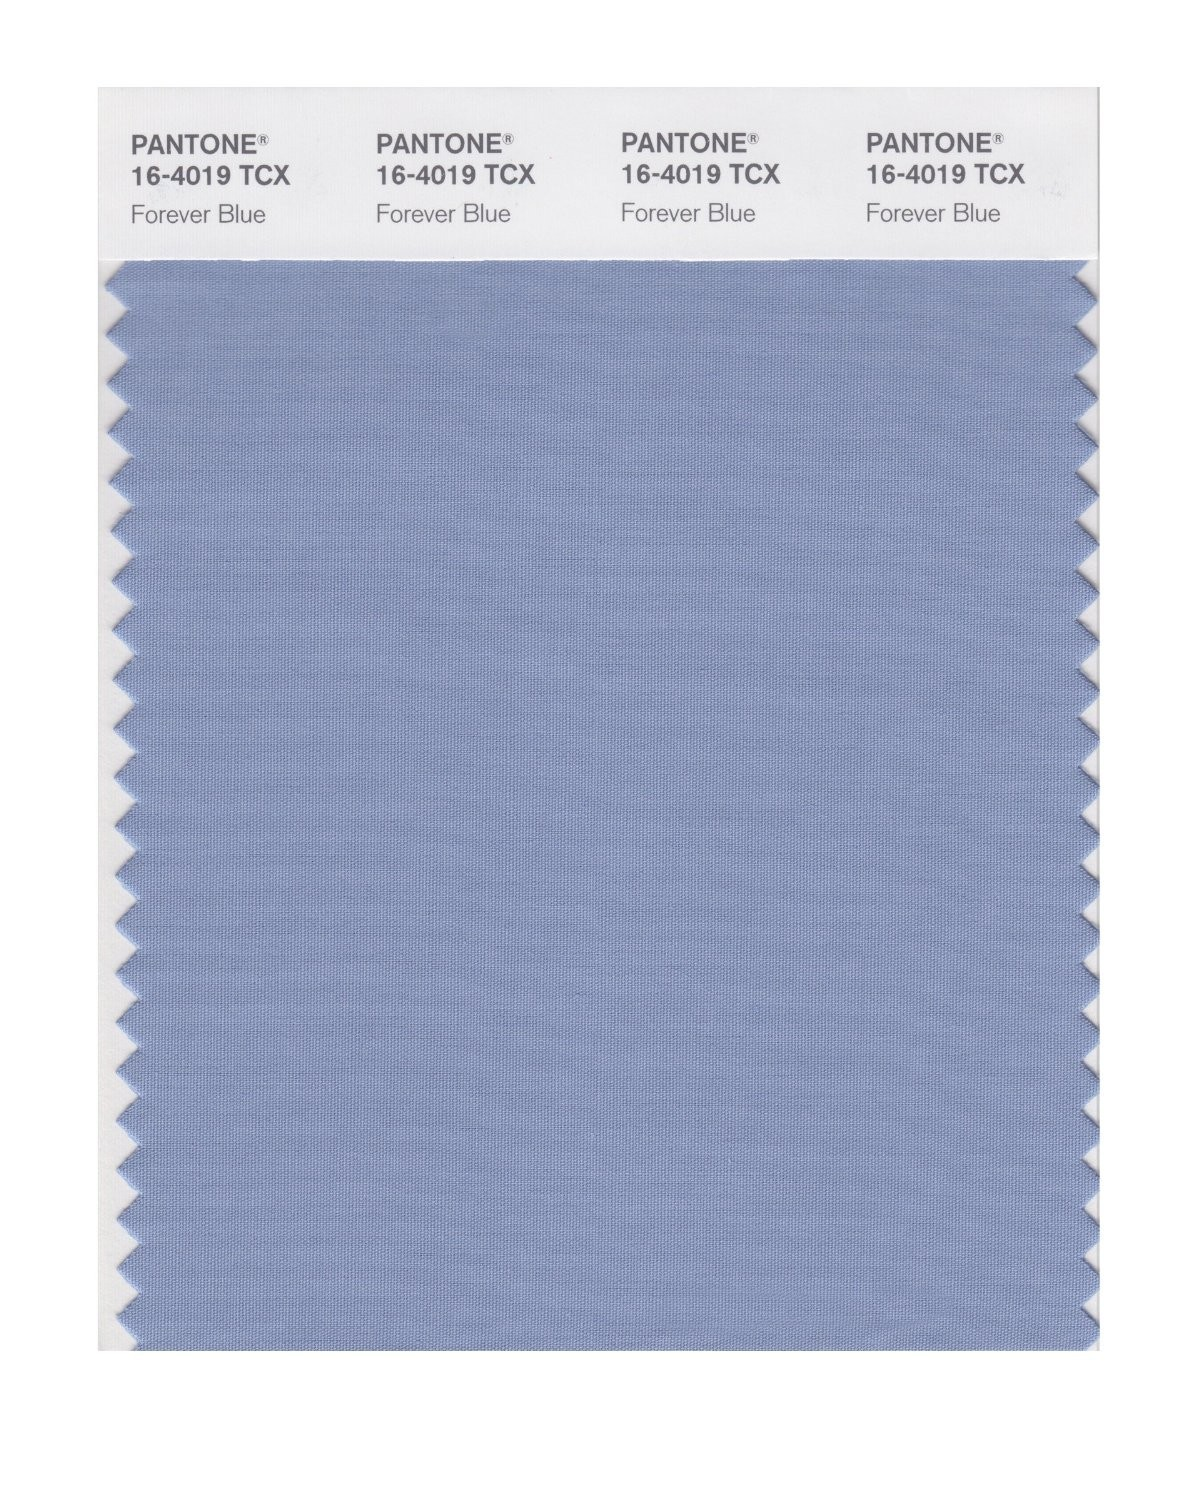 Pantone 16-4019 TCX Swatch Card Forever Blue